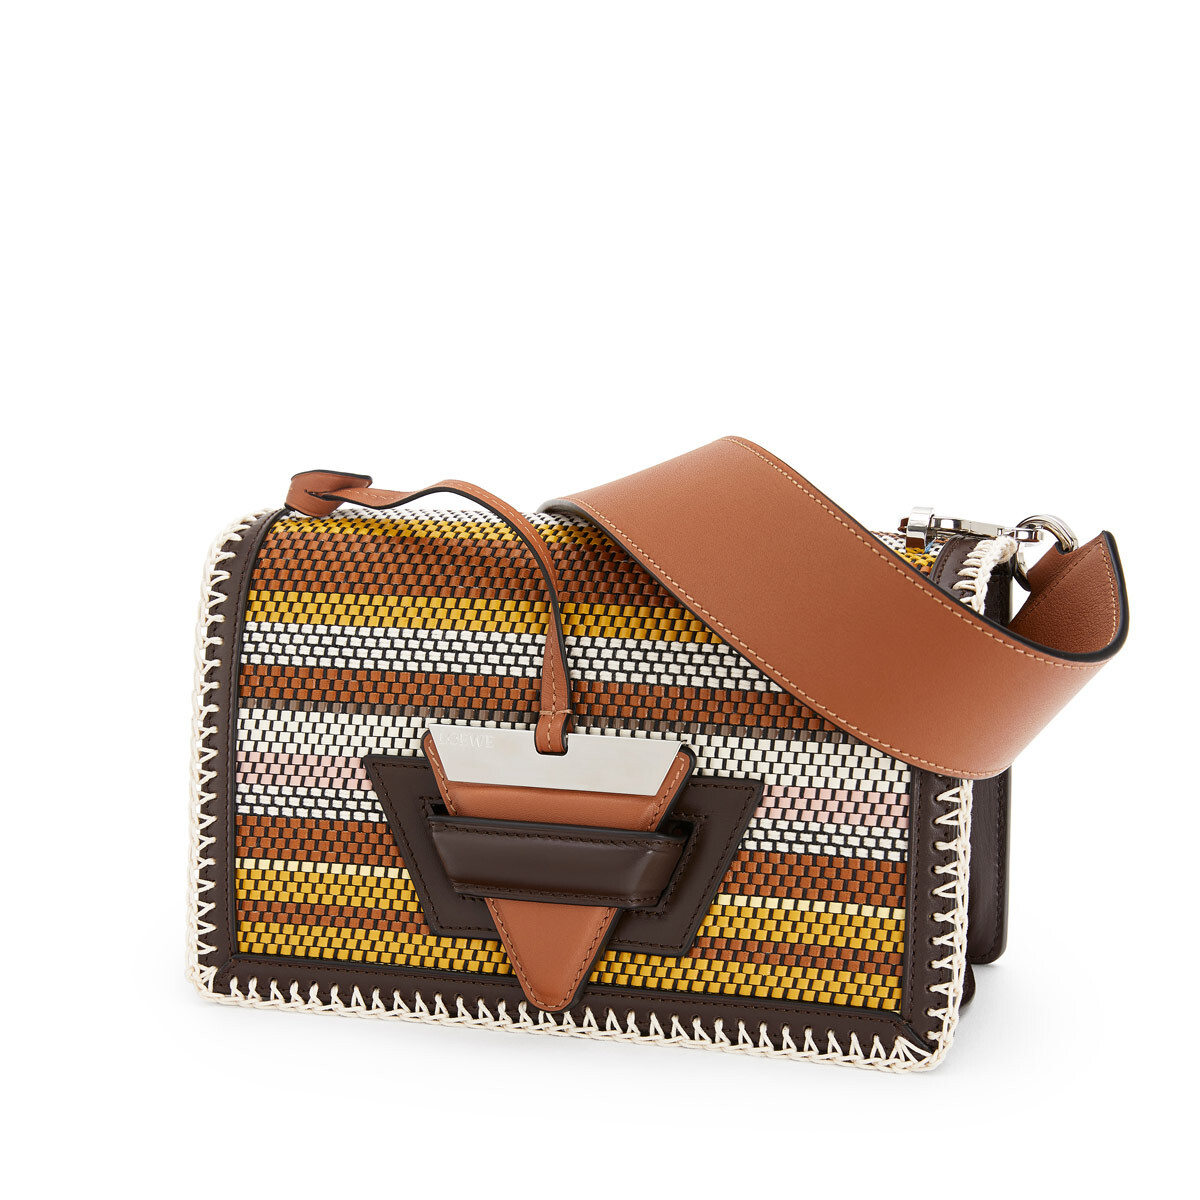 LOEWE Barcelona Woven Stripes Bag Chocolate Brown/Multicolor front